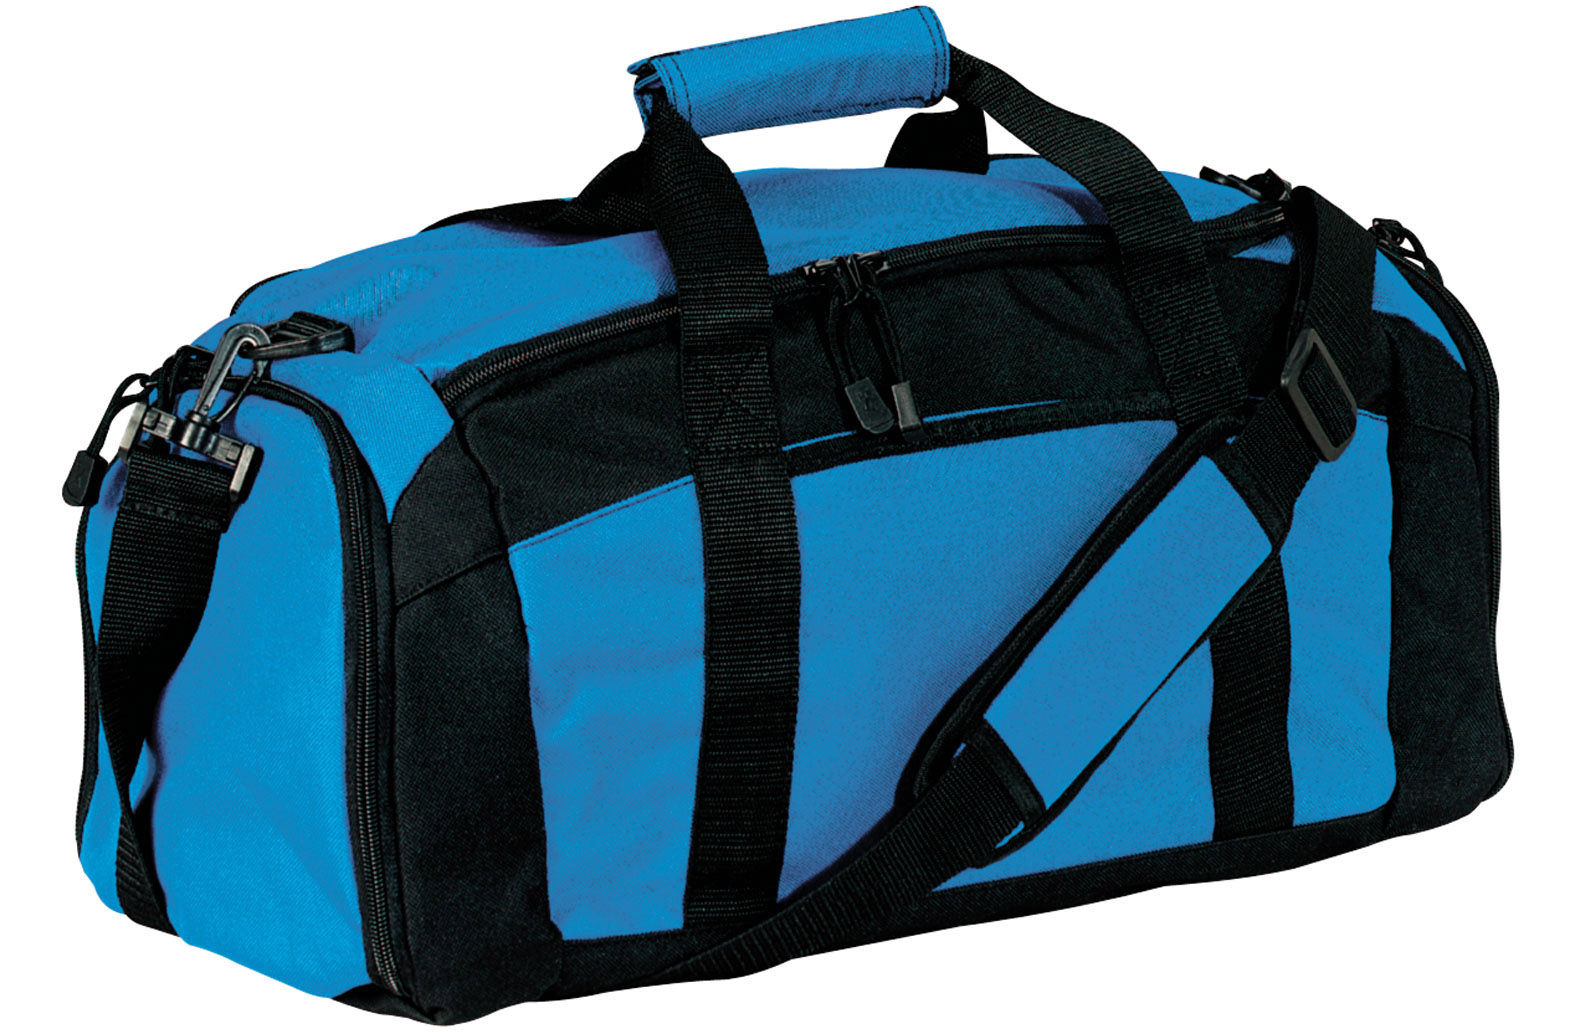 sports kit bags Manufacturers, Wholesale Suppliers